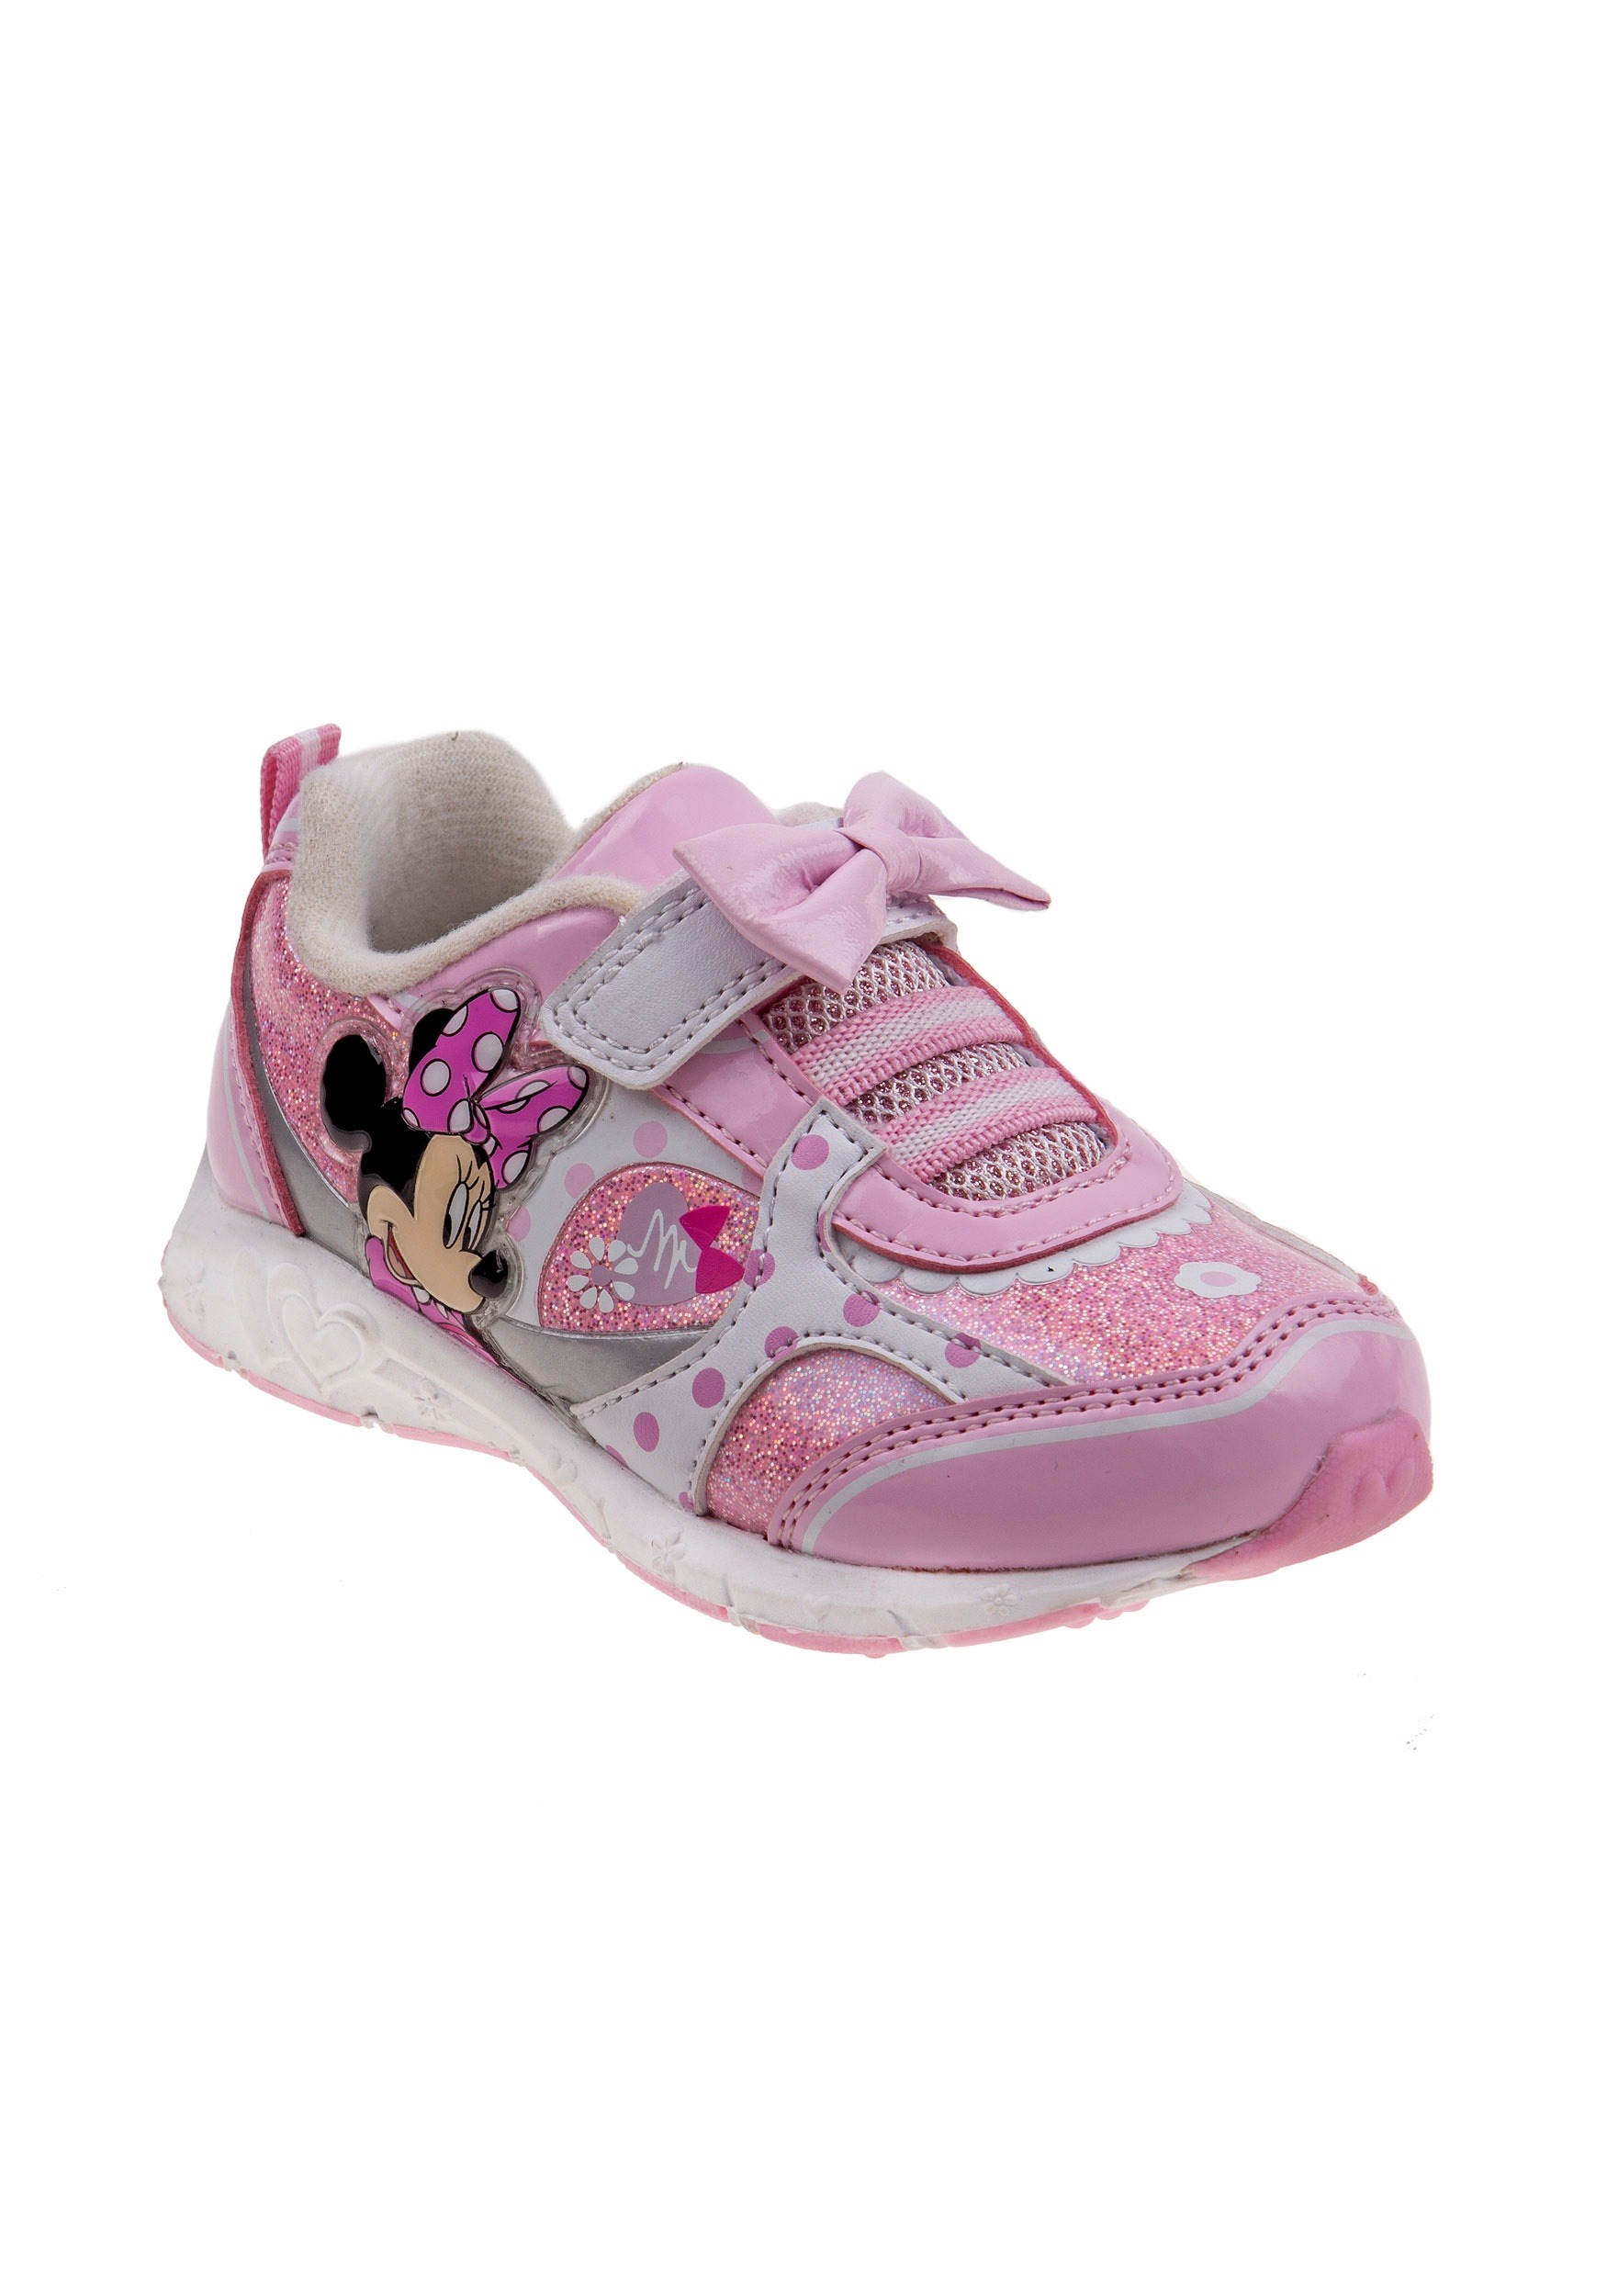 Minnie Mouse Bow Girls Light Up Sneakers